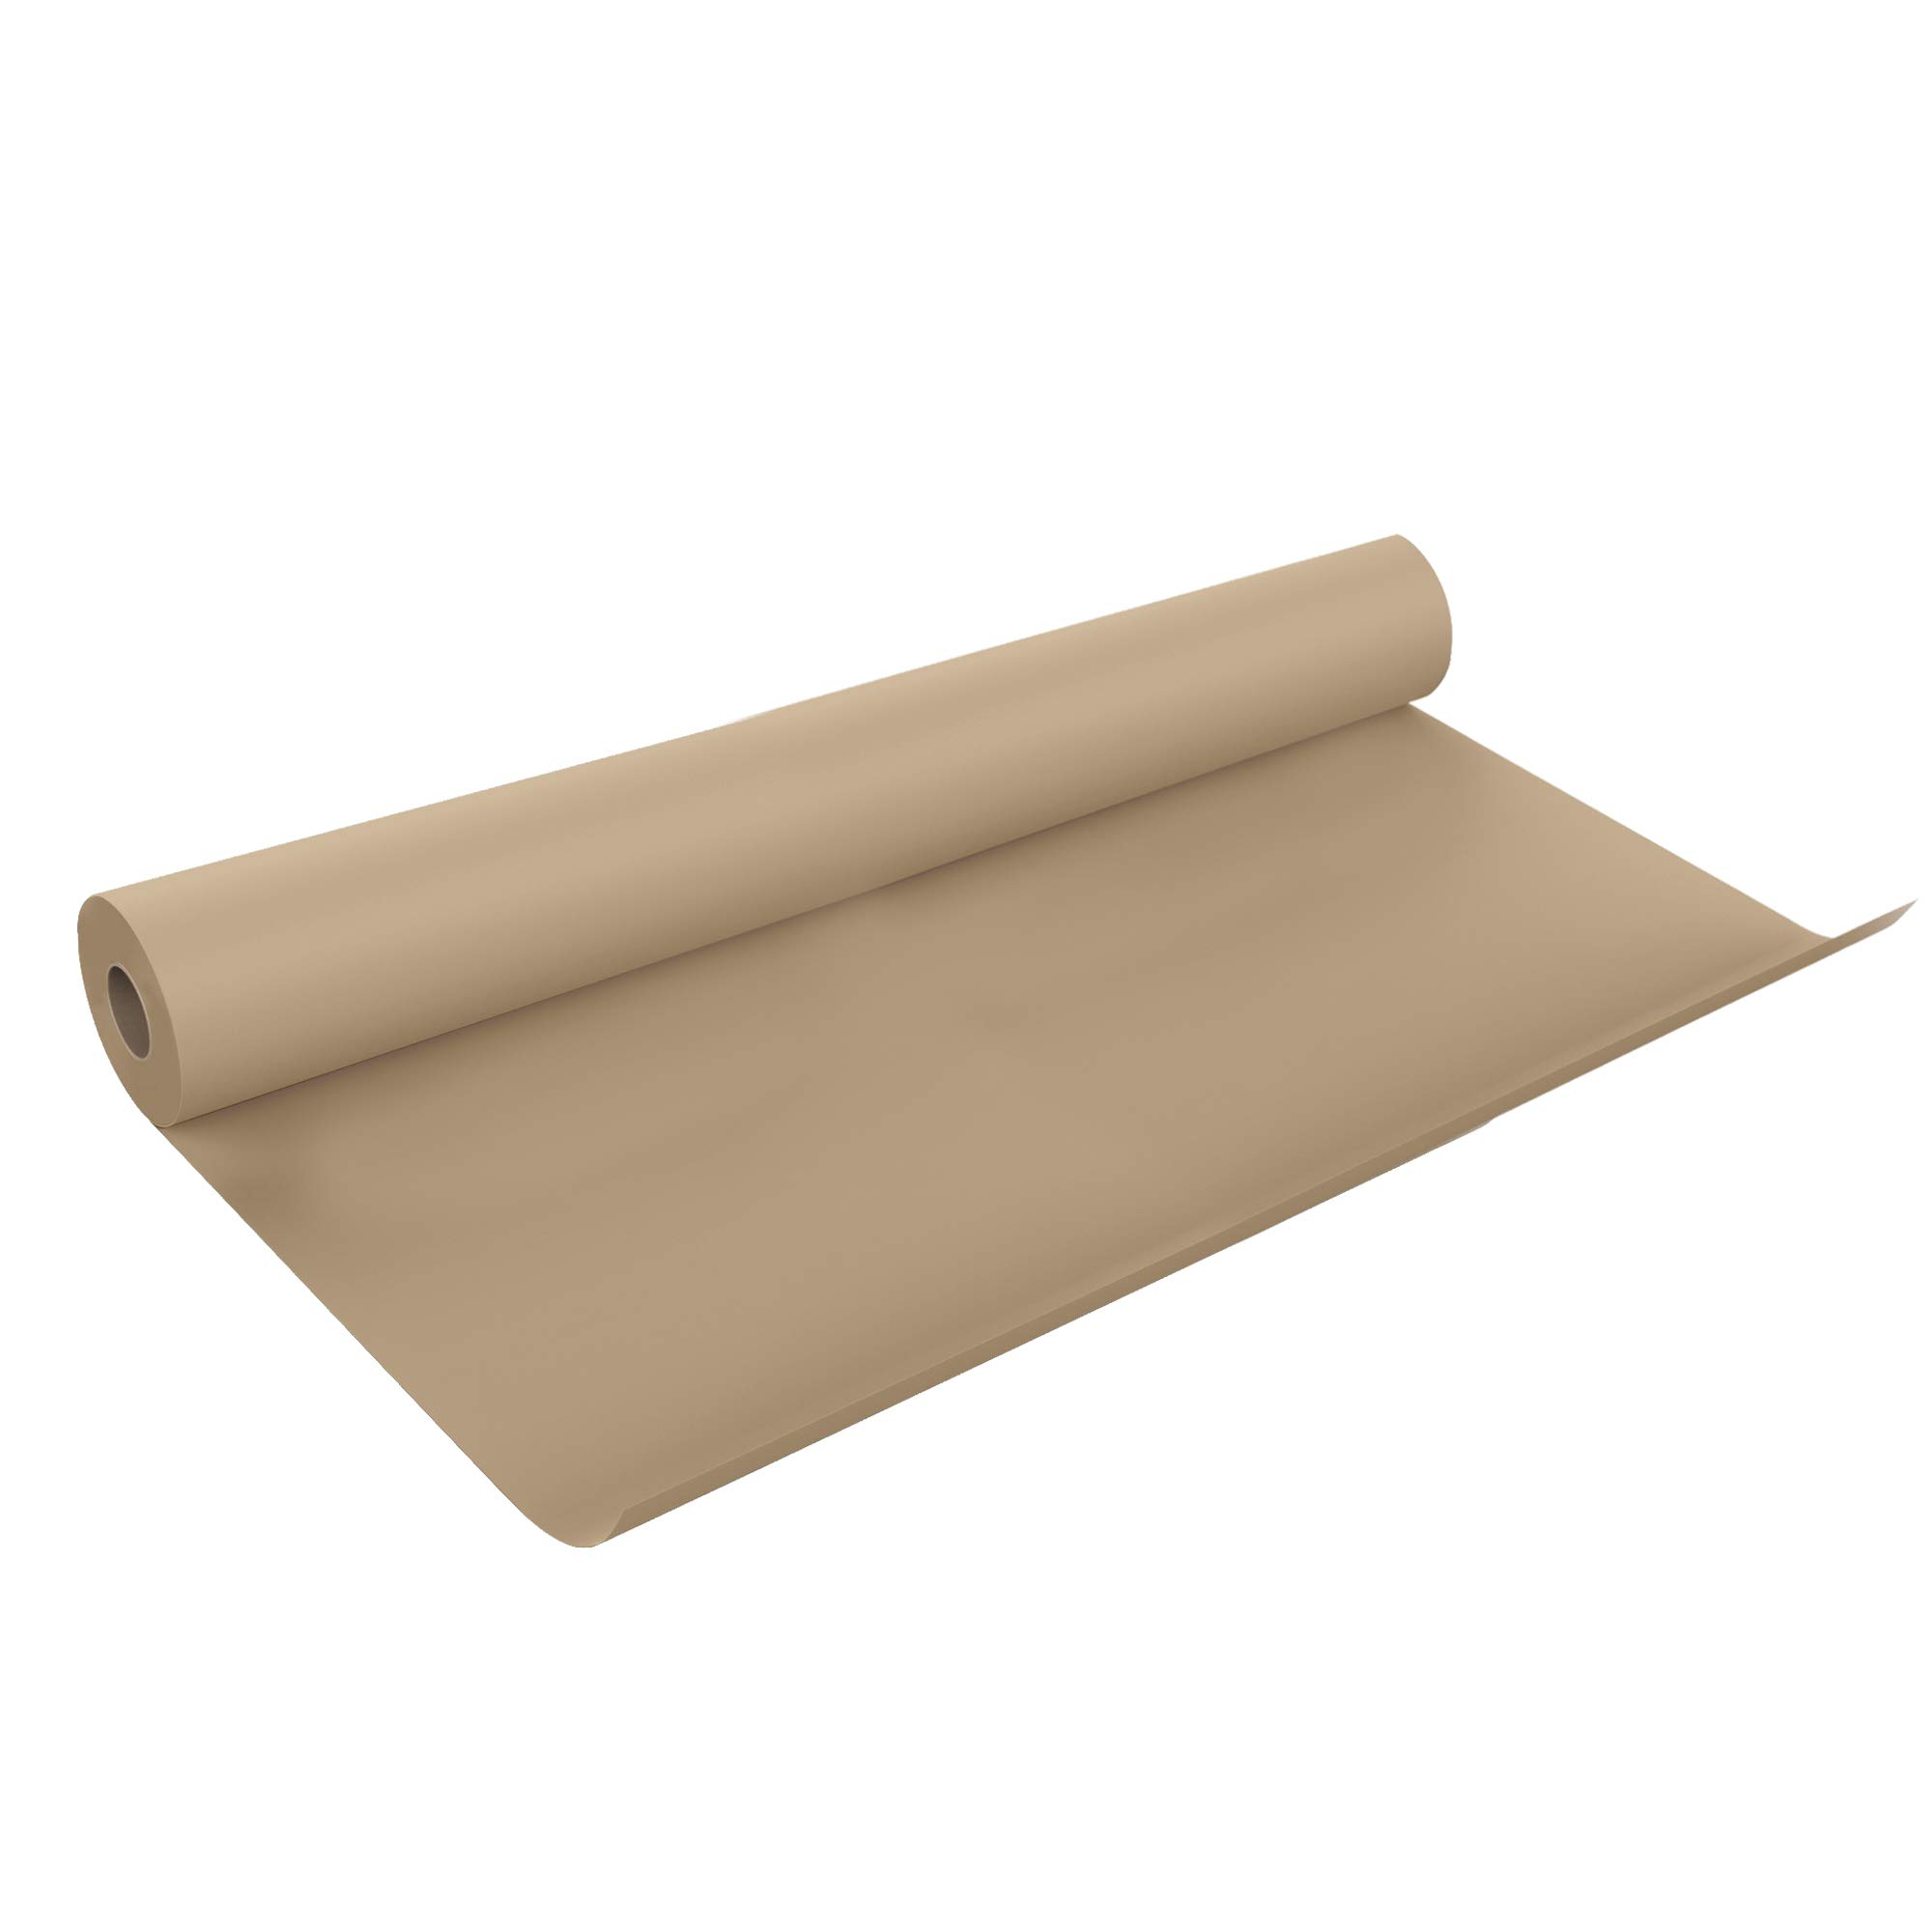 Extra-Wide Brown Kraft USA Paper Roll - 48In x 100Ft - Gift Wrapping, Art, Craft, Postal, Packing, Shipping, Floor Protection, Dunnage, Parcel, Table Runner - Made in USA